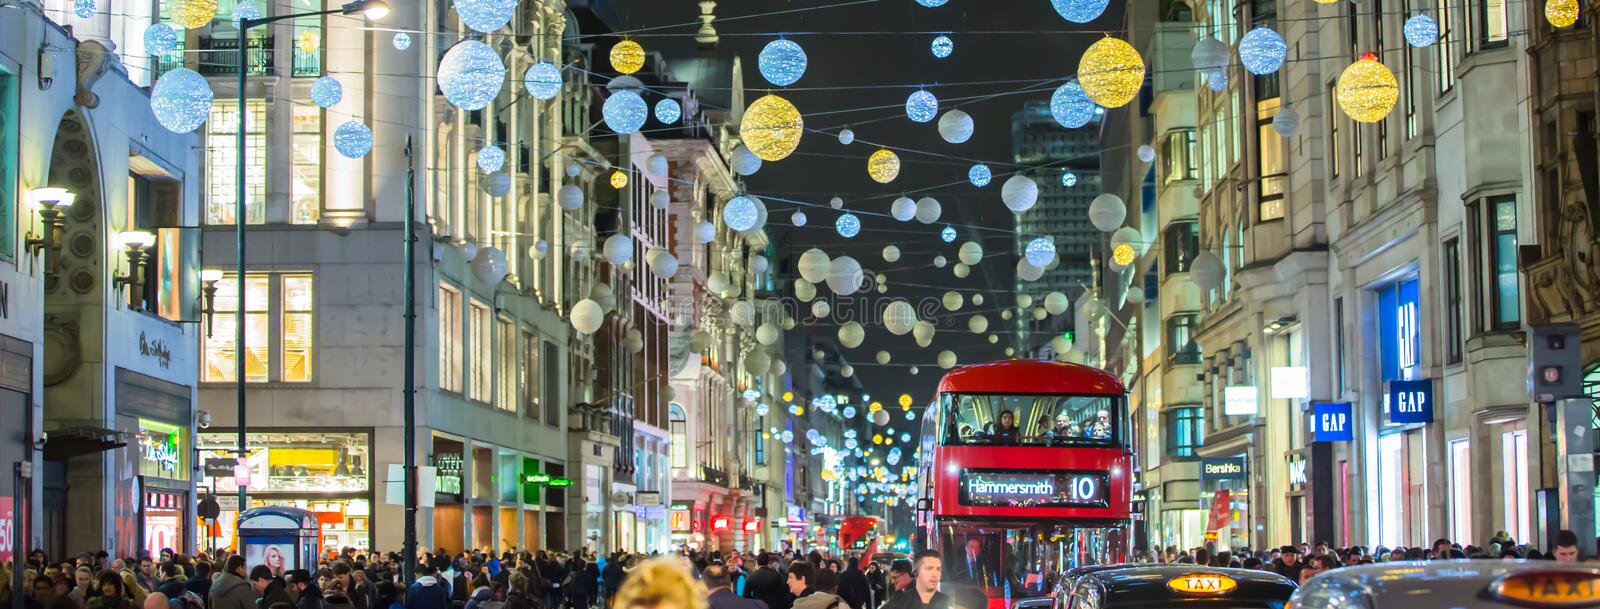 Christmas lights decoration at Oxford street and lots of people. LONDON, UK - DECEMBER 30, 2015: Christmas lights decoration at Oxford street and lots of people royalty free stock photos